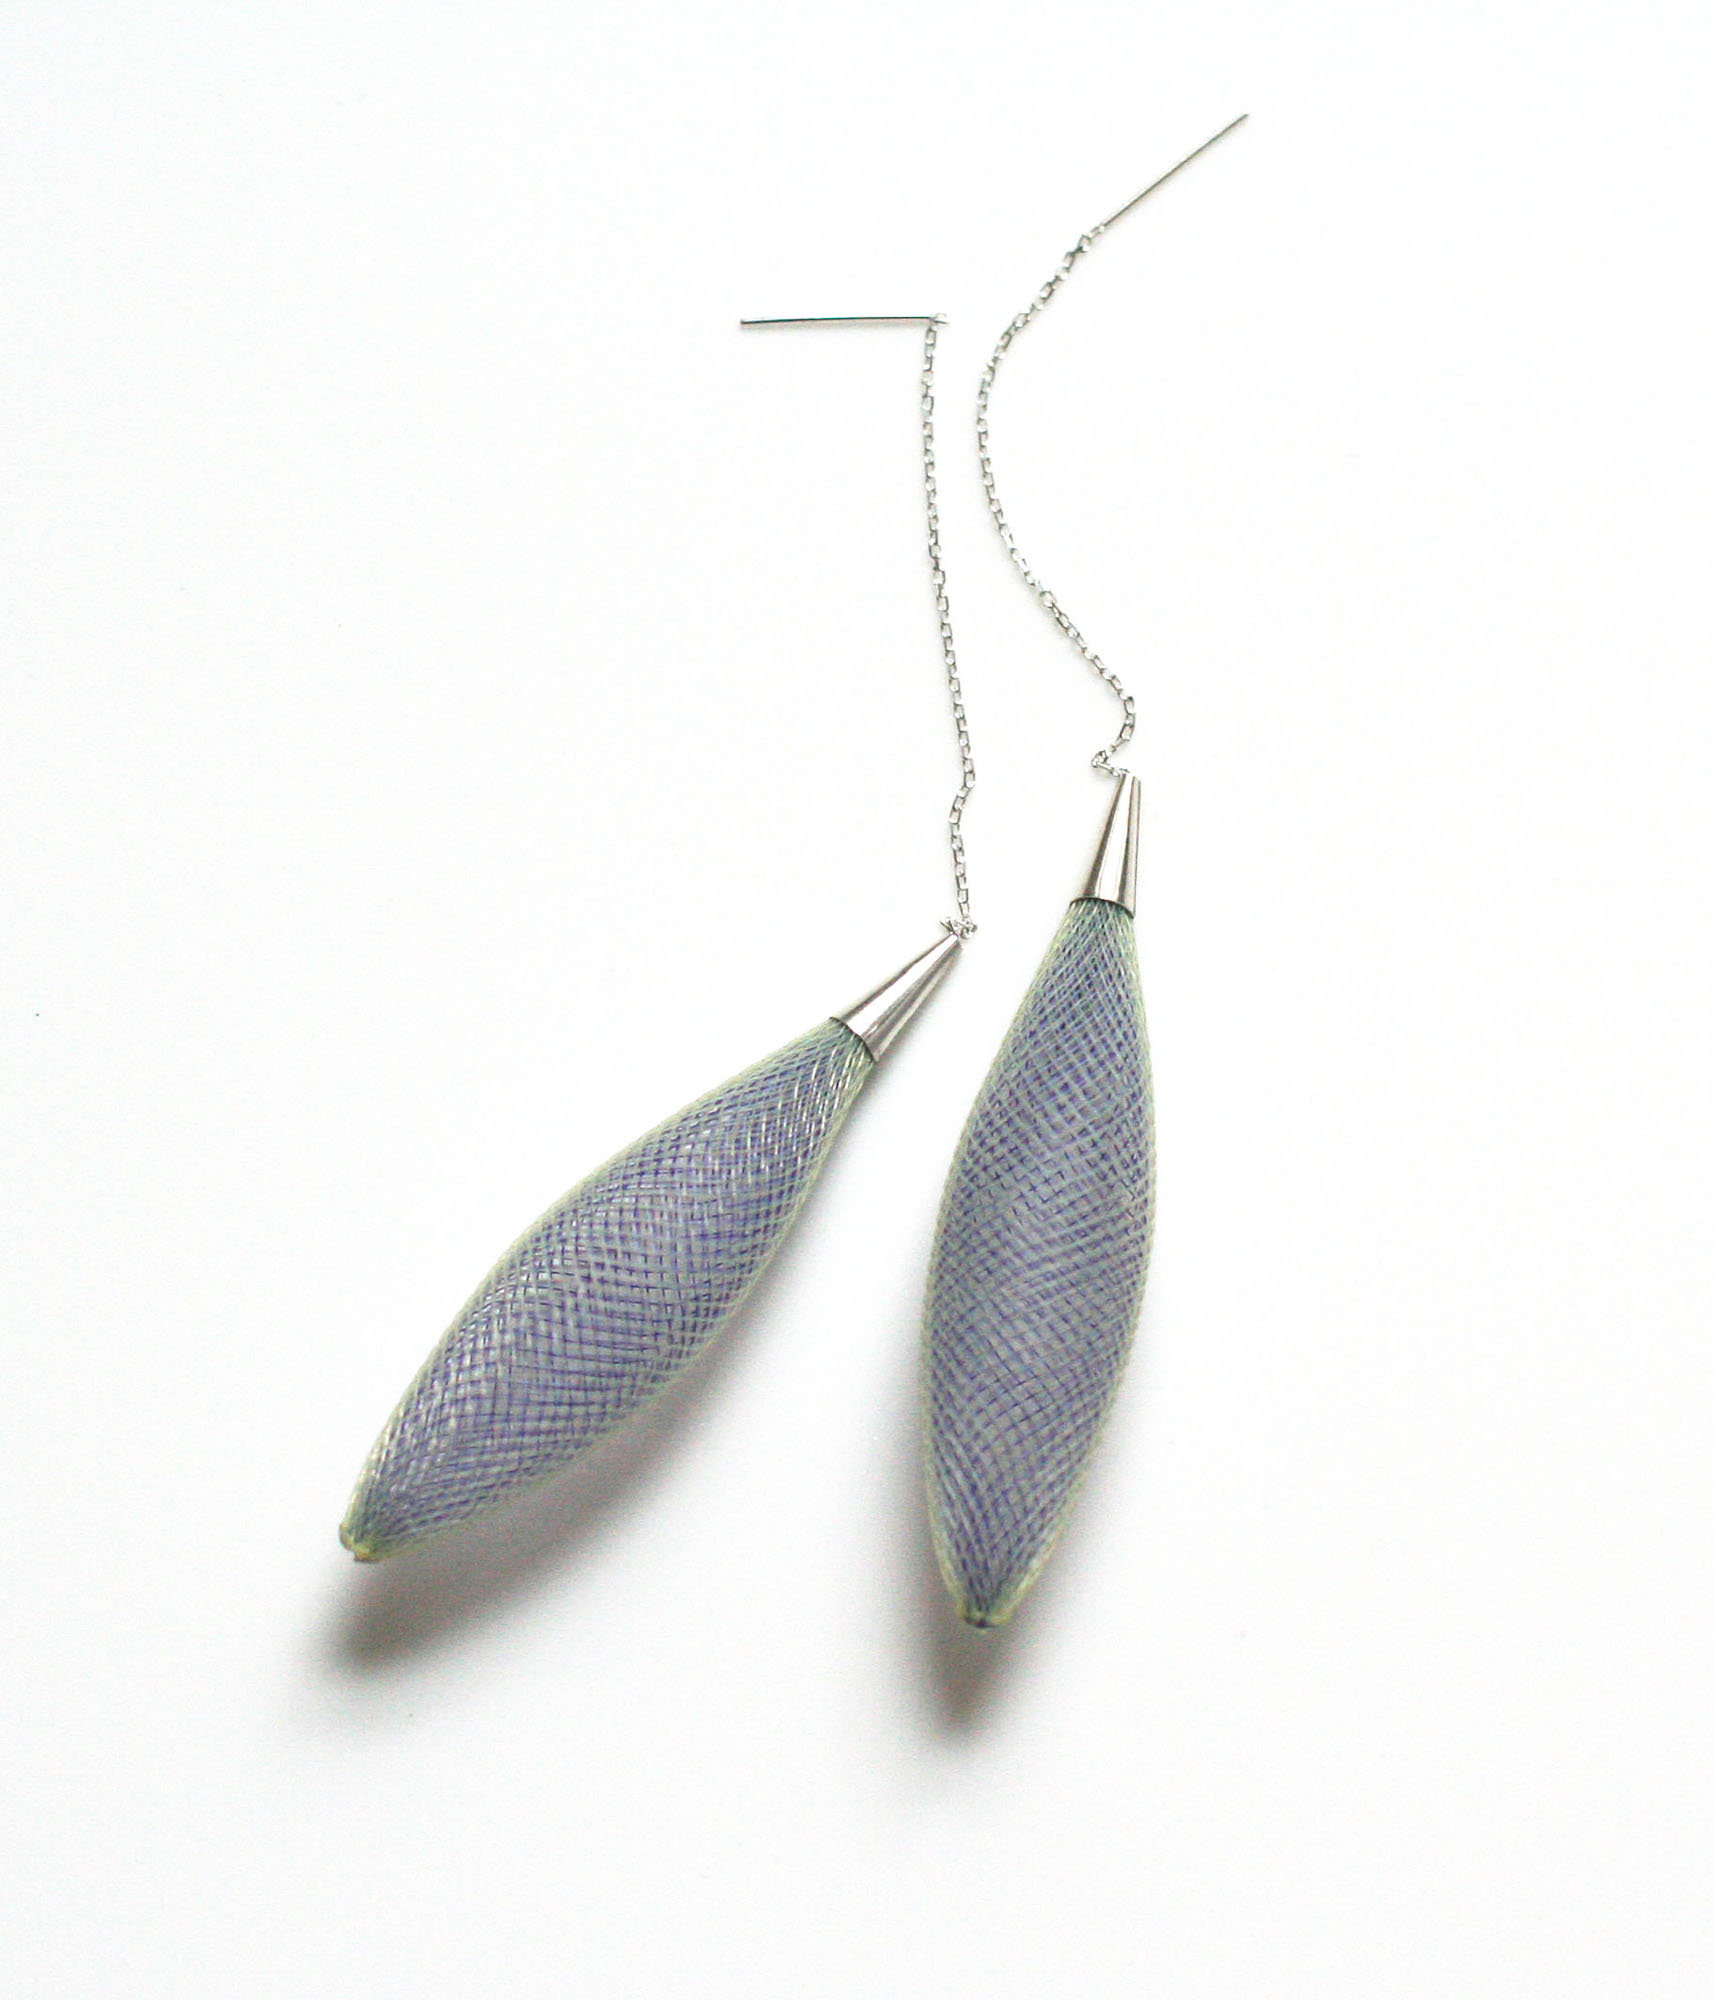 Nylon Earrings 106